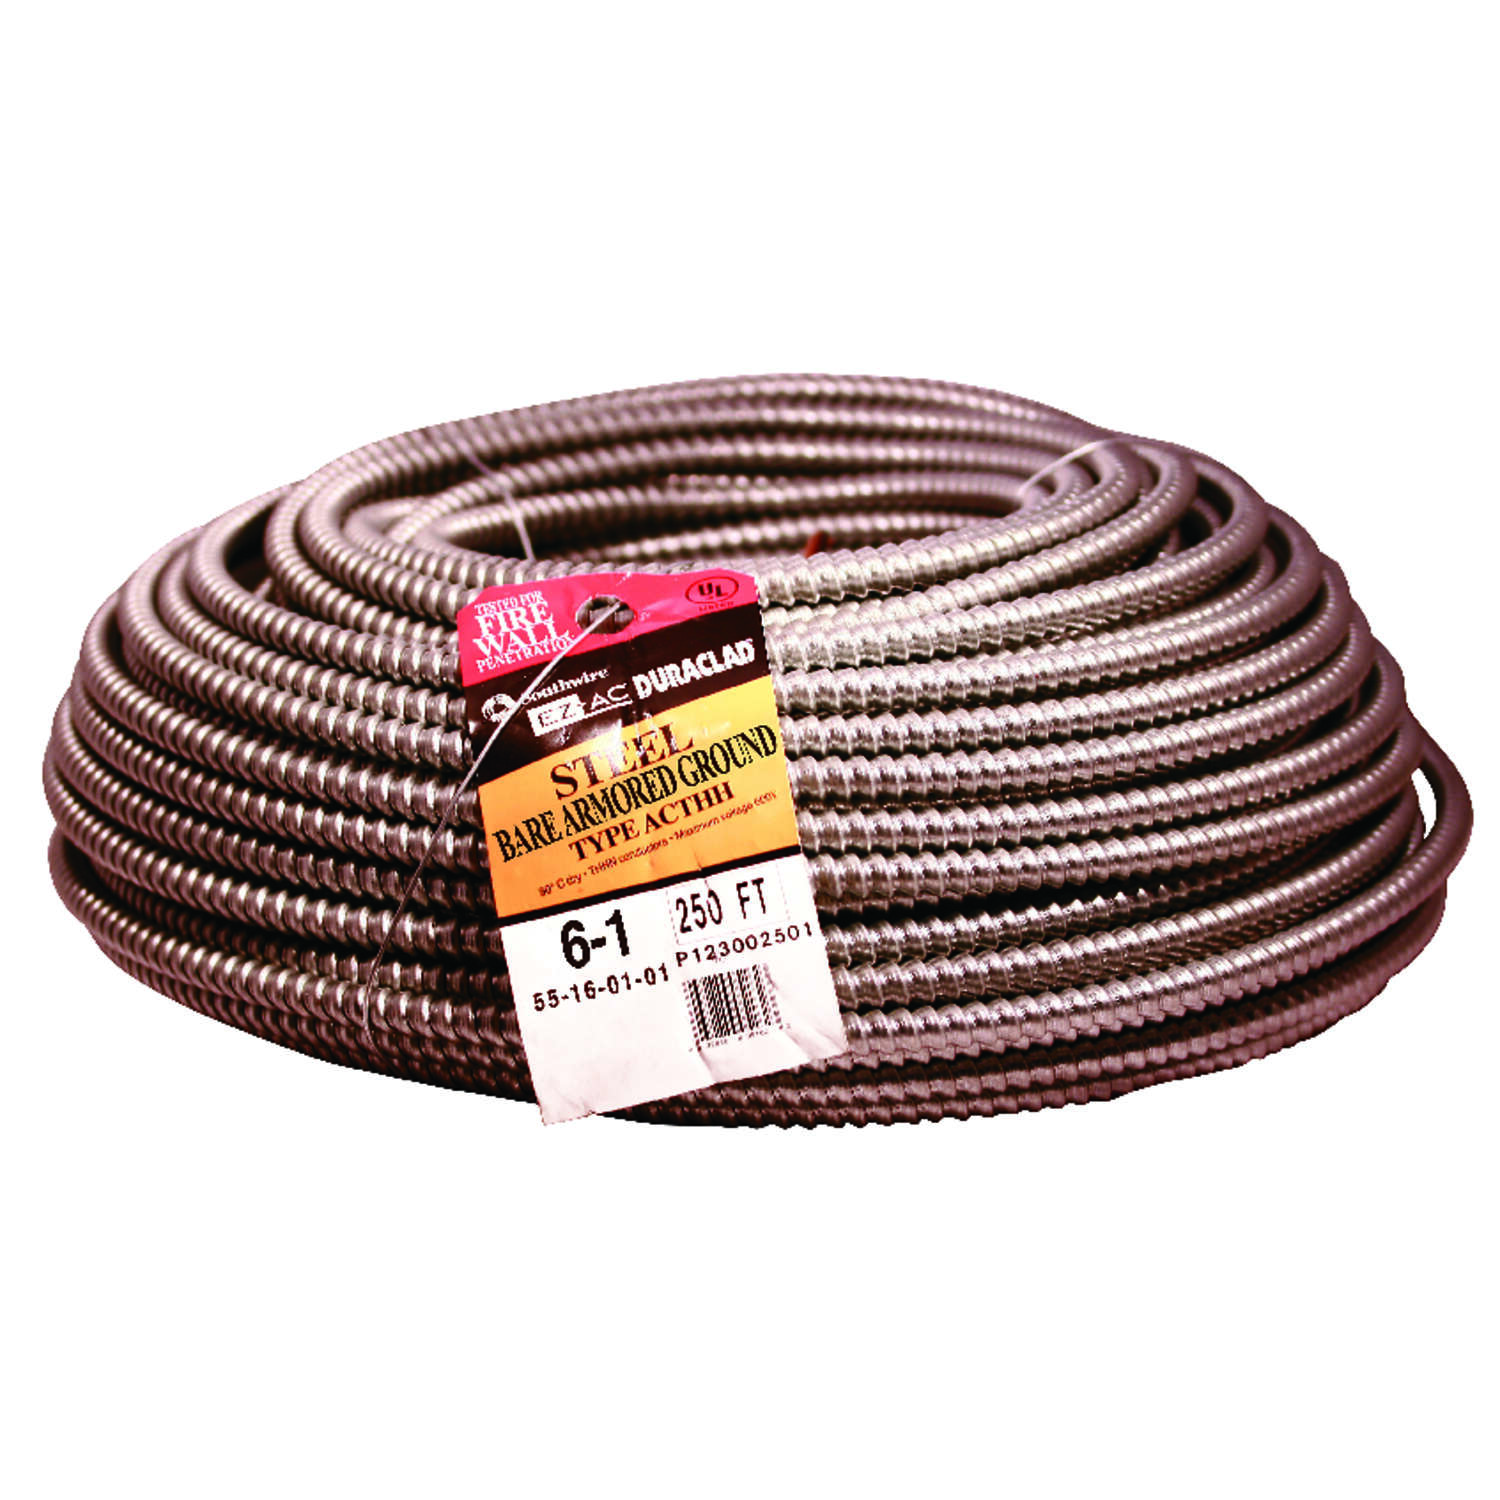 Southwire  Duraclad  250 ft. 6/1  Solid  Bare Armored Copper  Wire